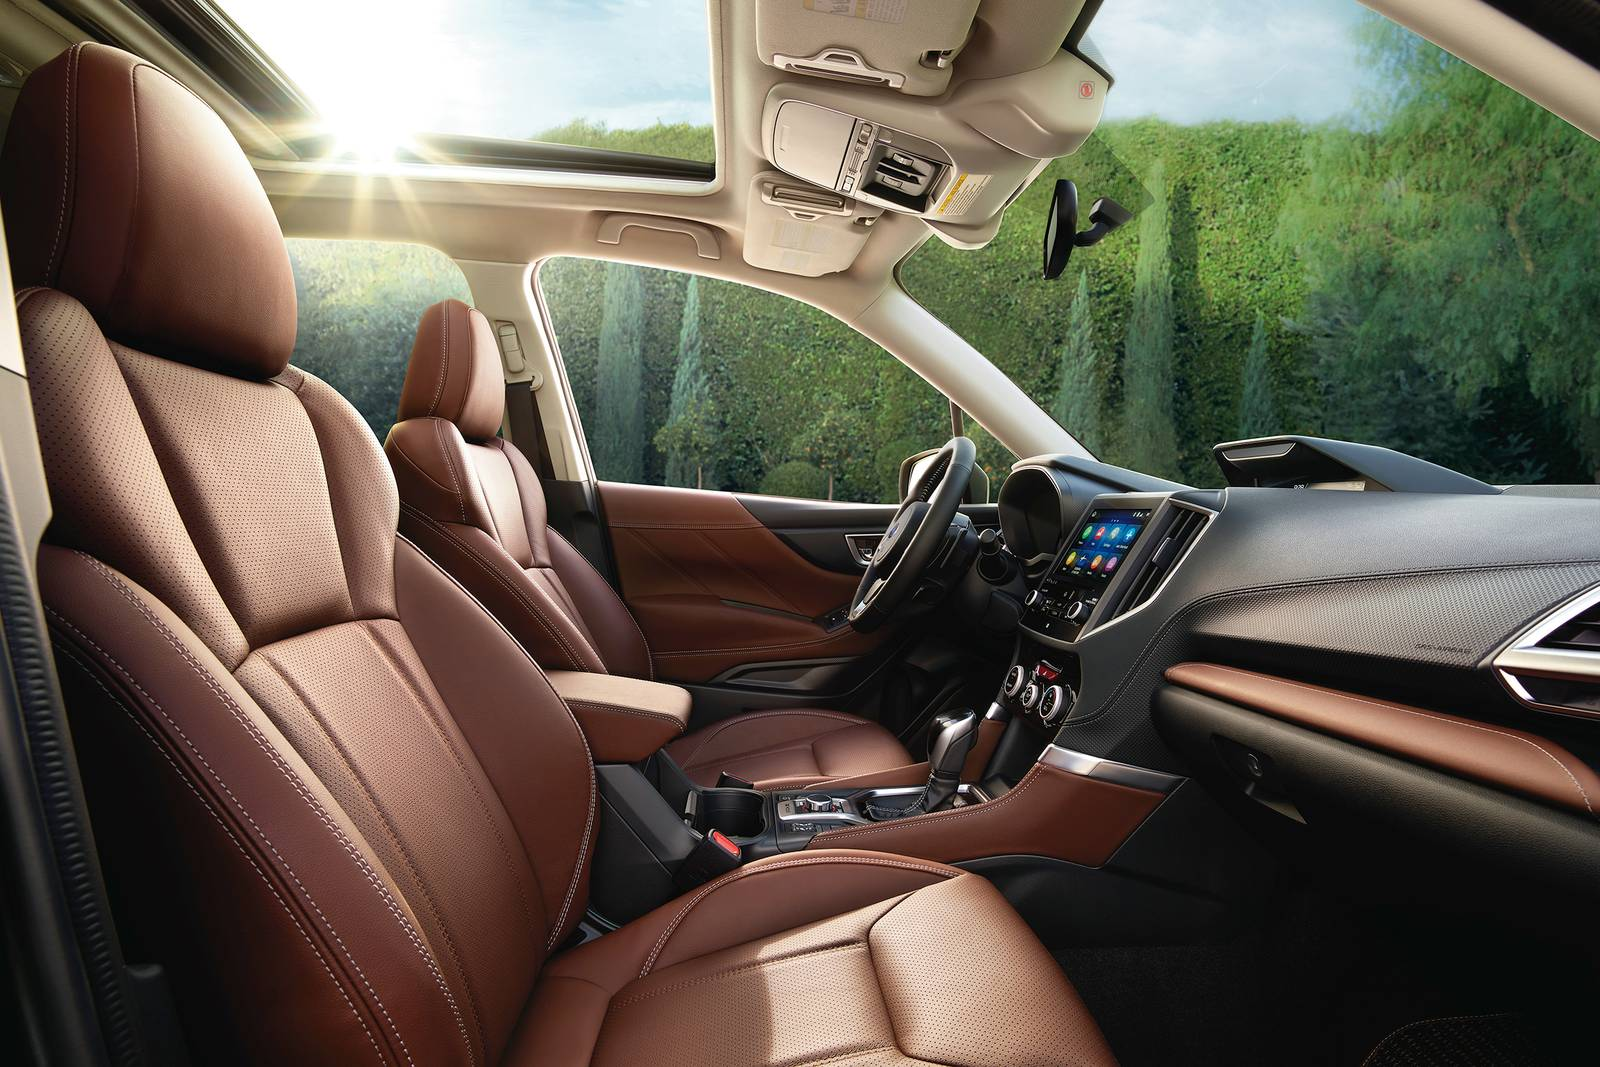 2019 Subaru Forester Touring Interior Features and Design